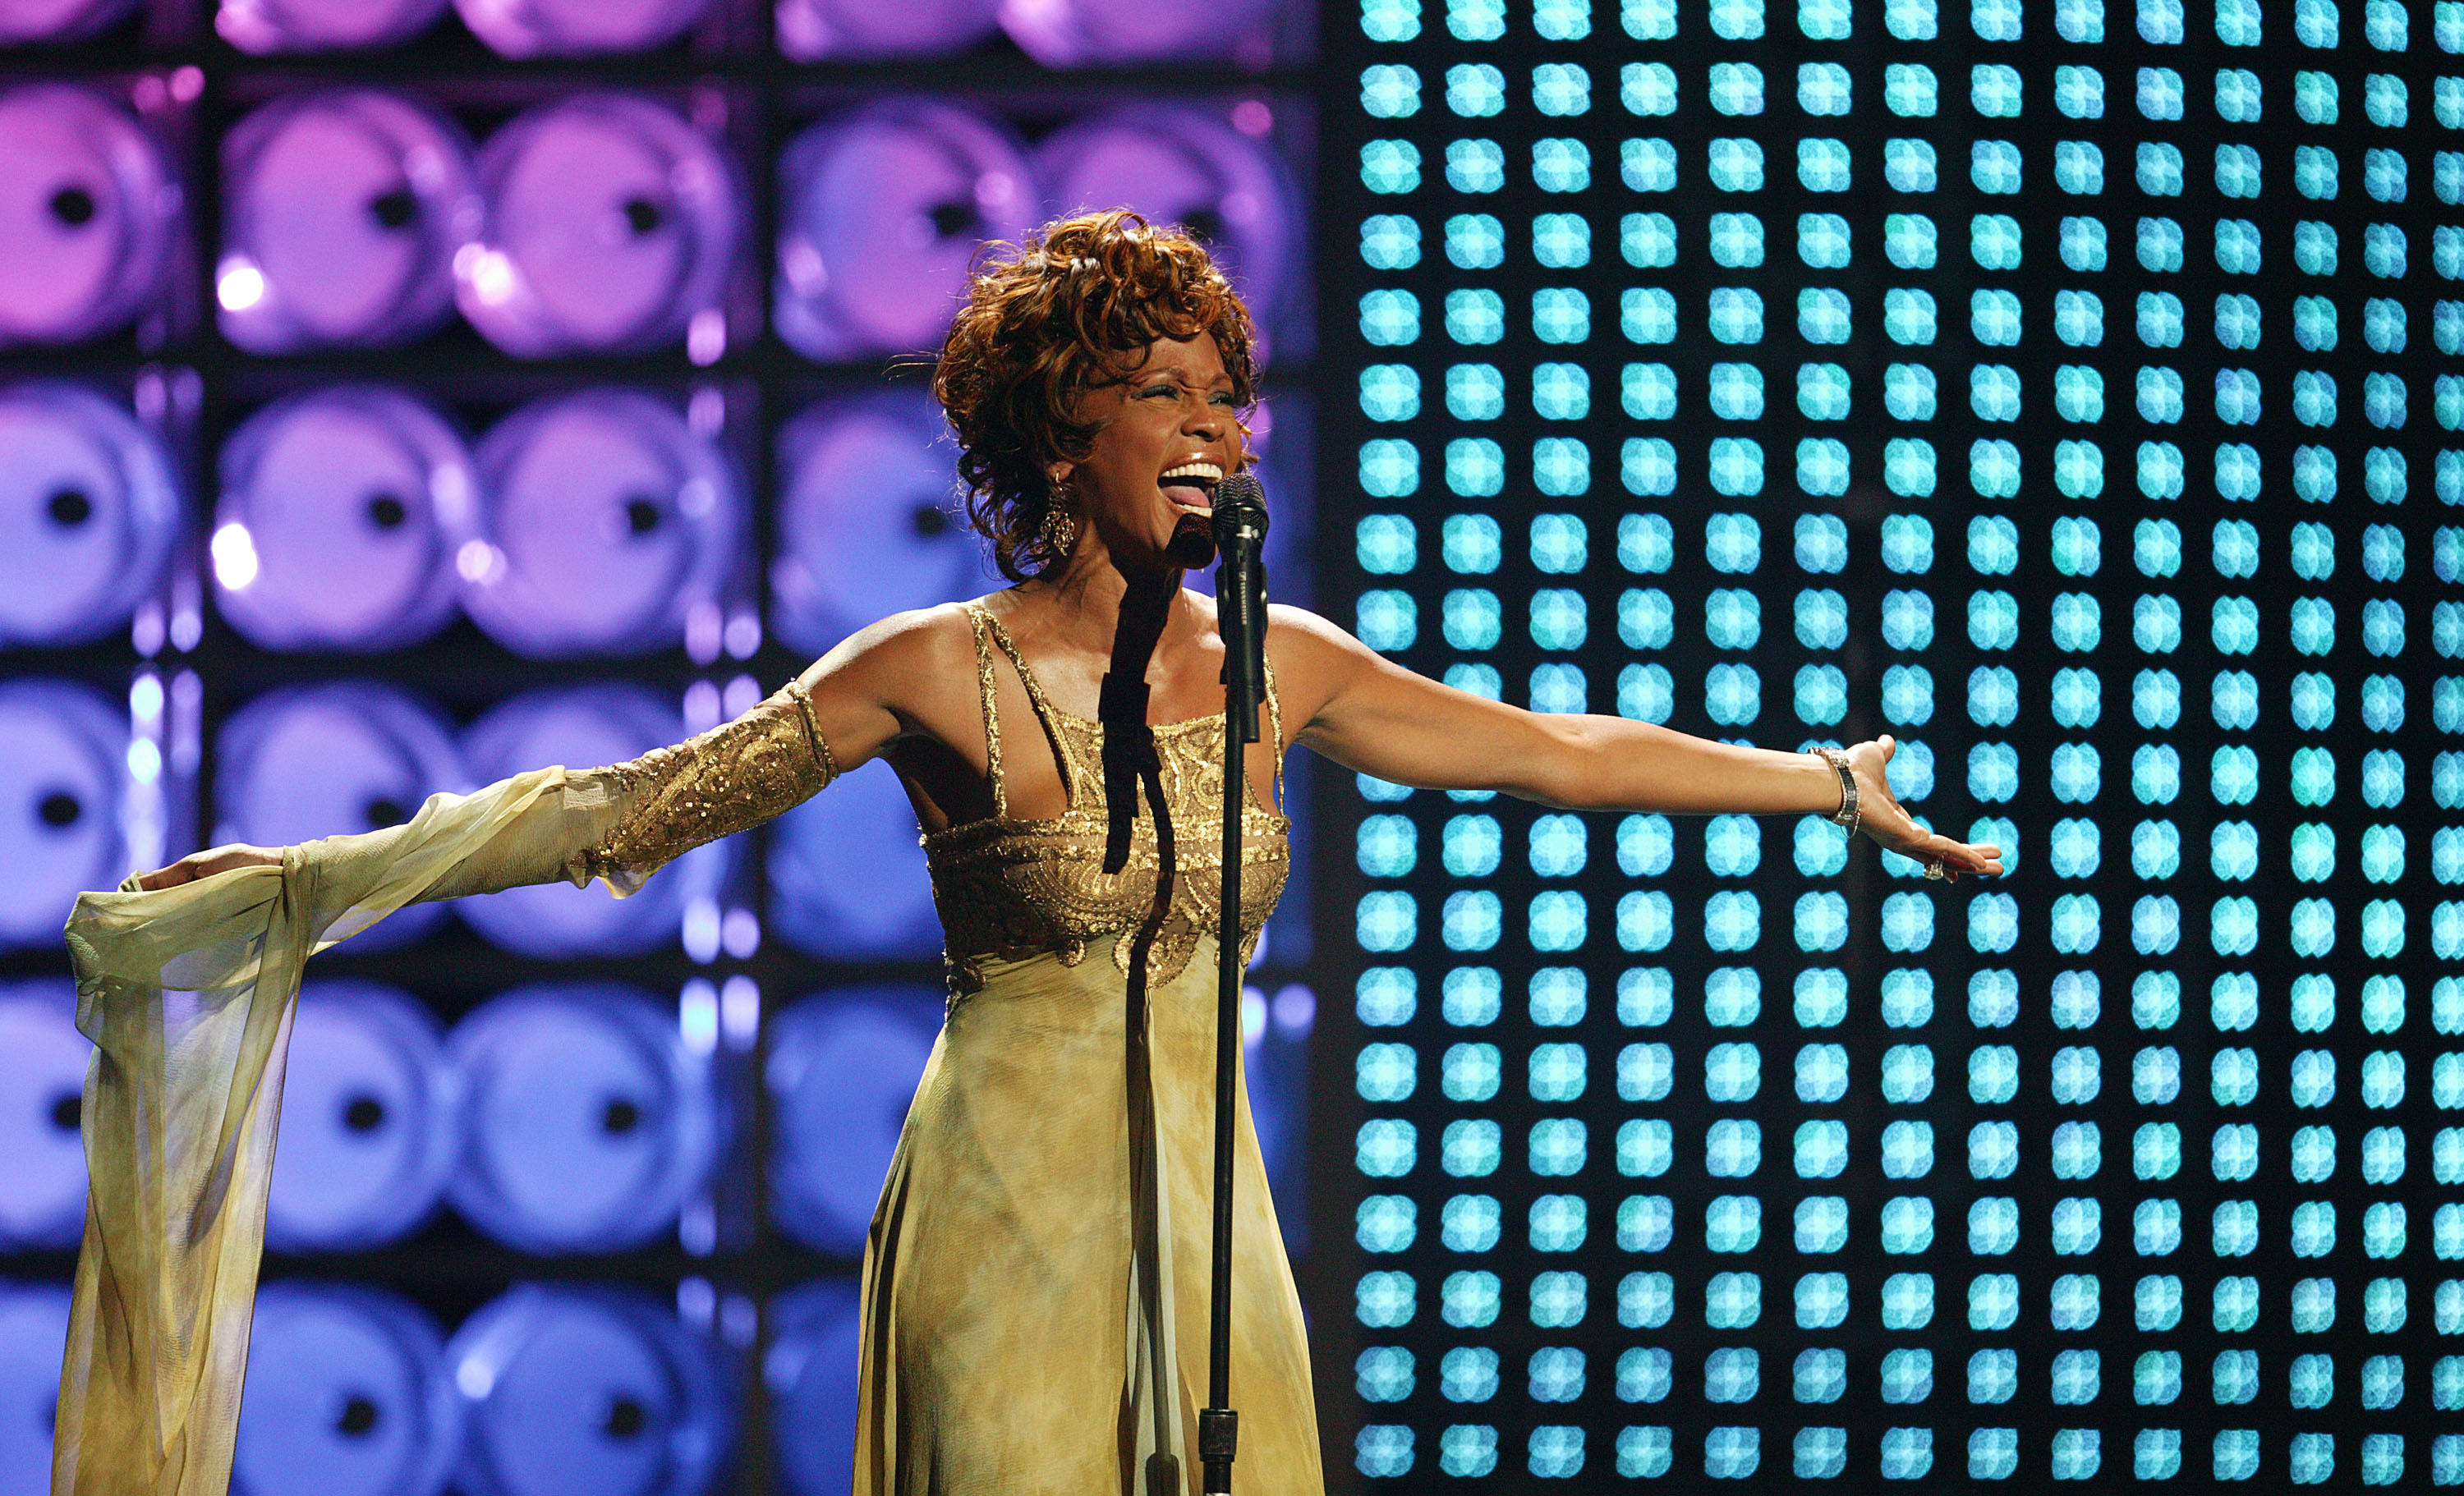 Whitney Houston performs on stage at the 2004 World Music Awards on Sept. 15, 2004 in Las Vegas.